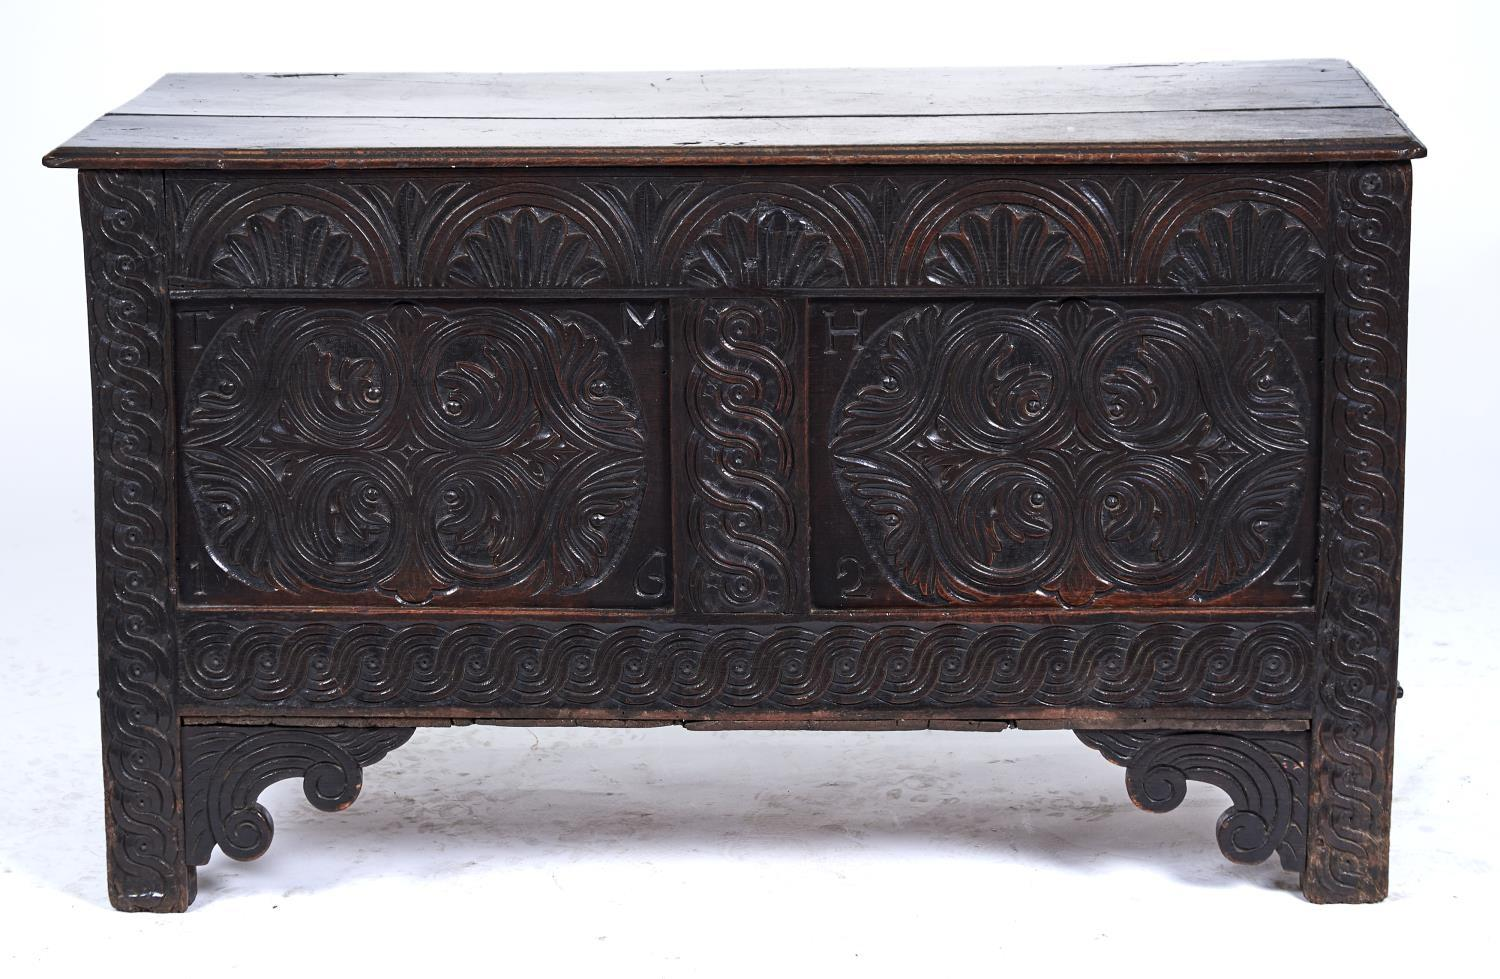 A LATE 17TH C OAK BLANKET CHEST, THE TWIN PLANK TOP WITH MOULDED LIP ABOVE FRIEZE CARVED FOLIATE